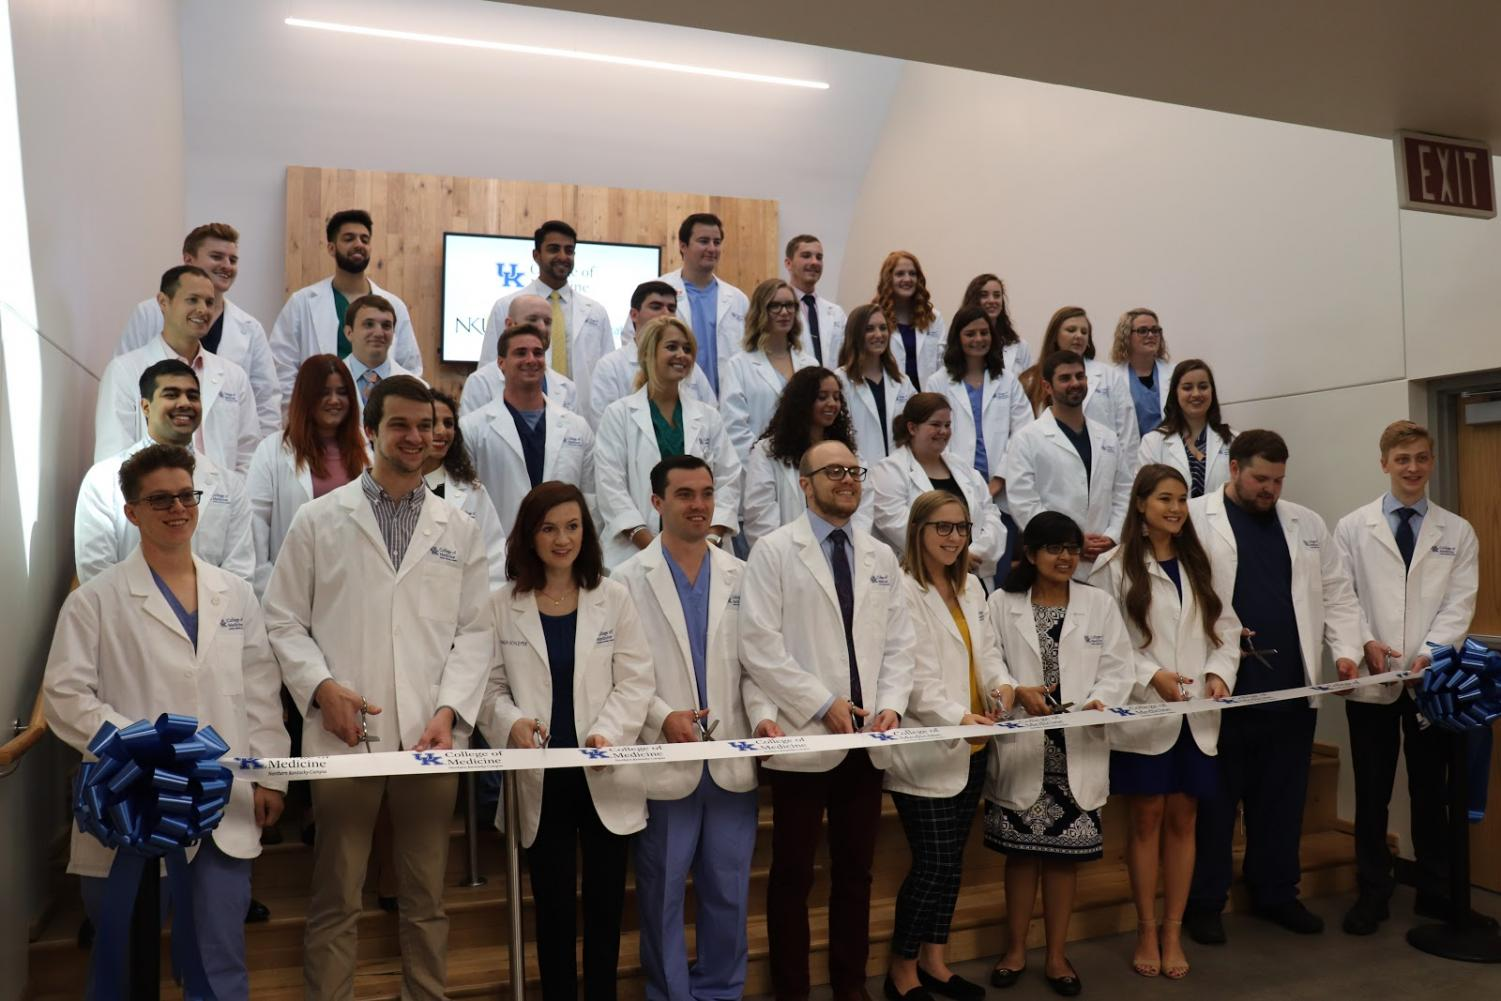 Students of the College of Medicine cutting the ribbon, marking the official opening of the college.